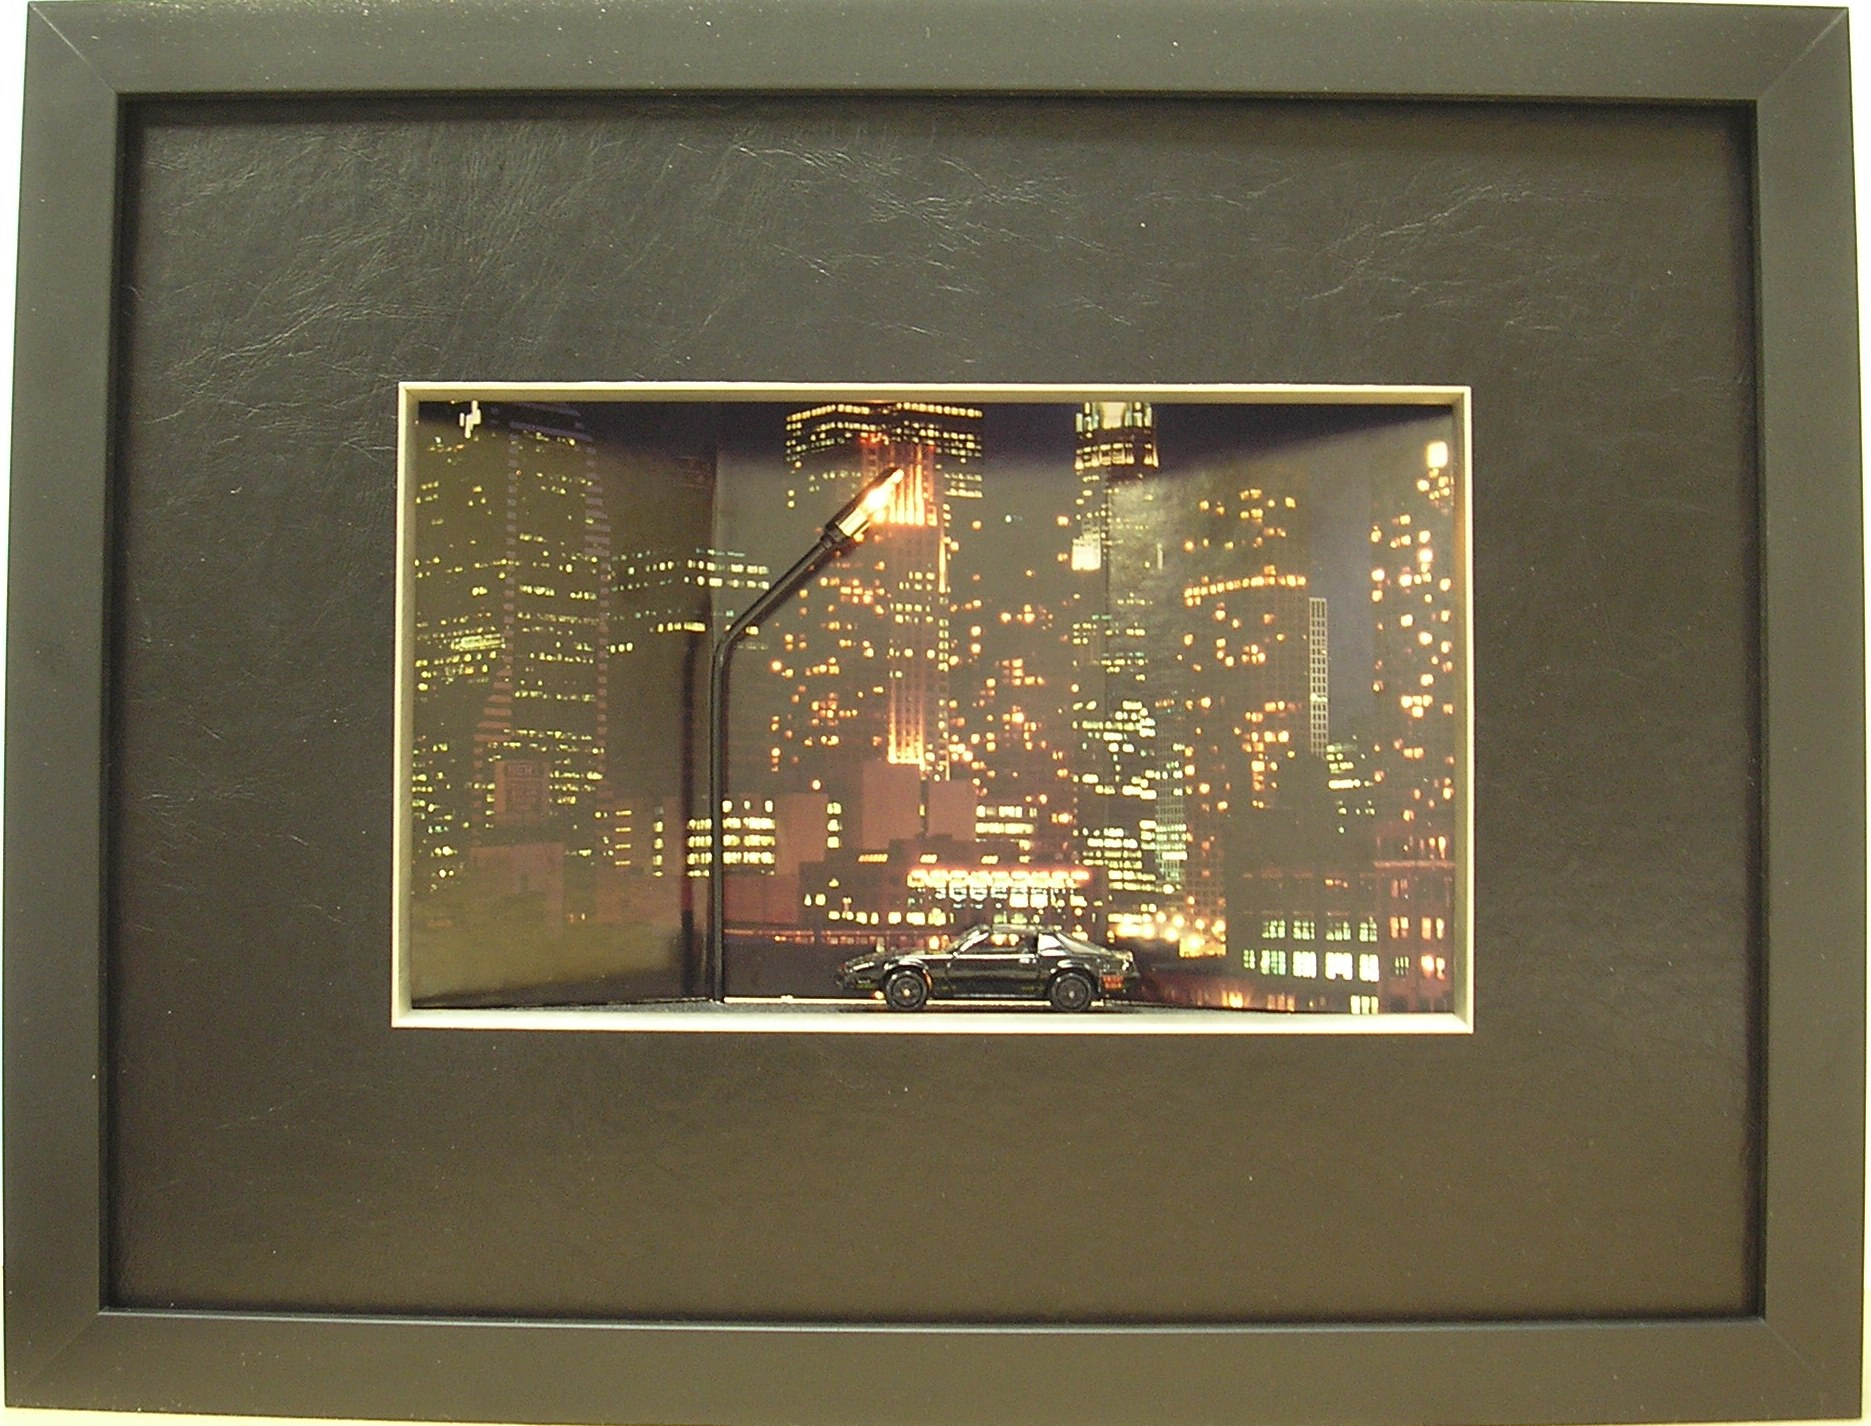 The Knight Rider Shadowbox